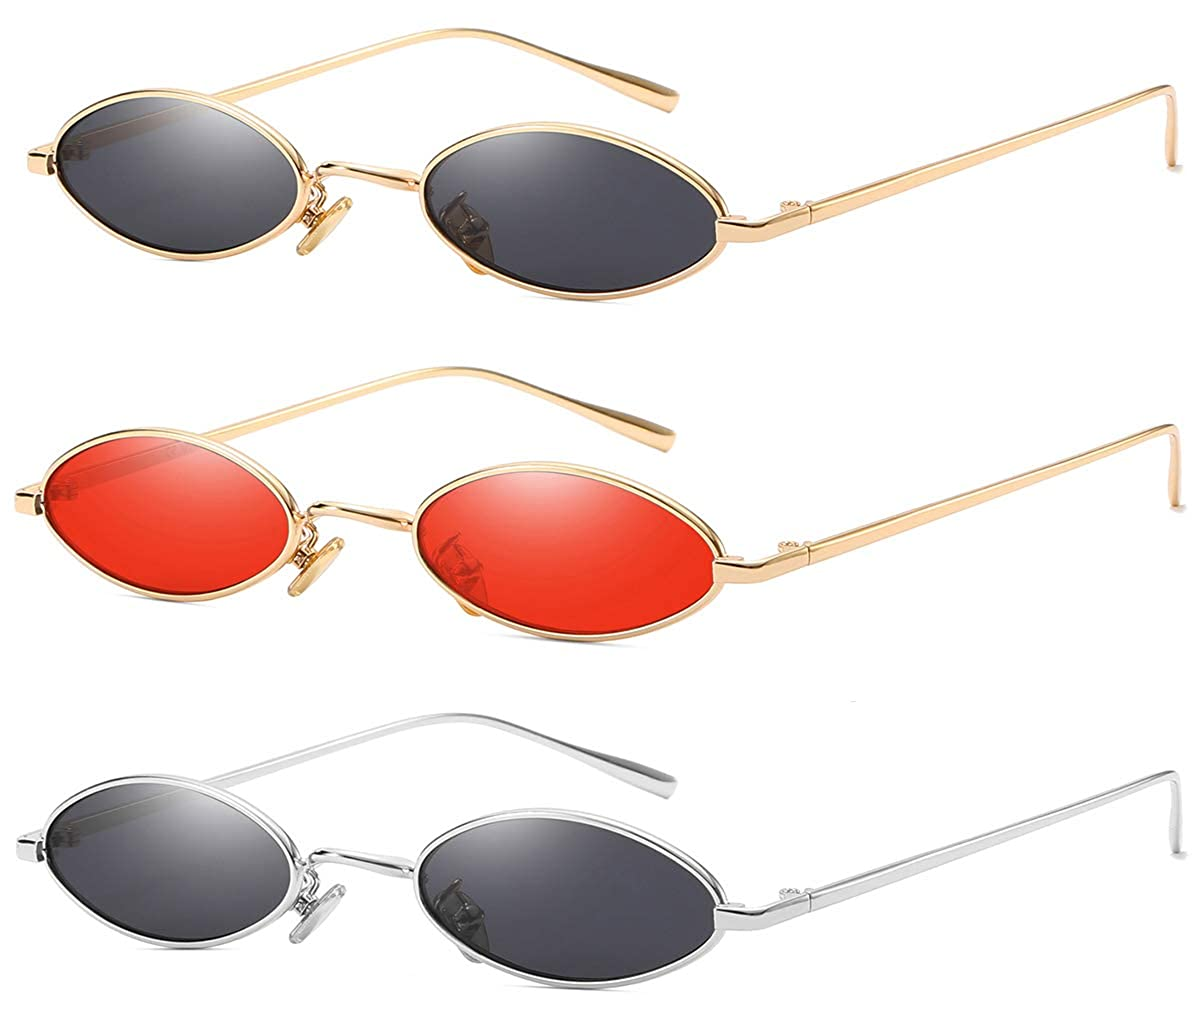 3pack Red Lens gold Frame Grey Lens Silver Frame Grey Lens gold Frame AOOFFIV Vintage Slender Oval Sunglasses Small Metal Frame Candy colors